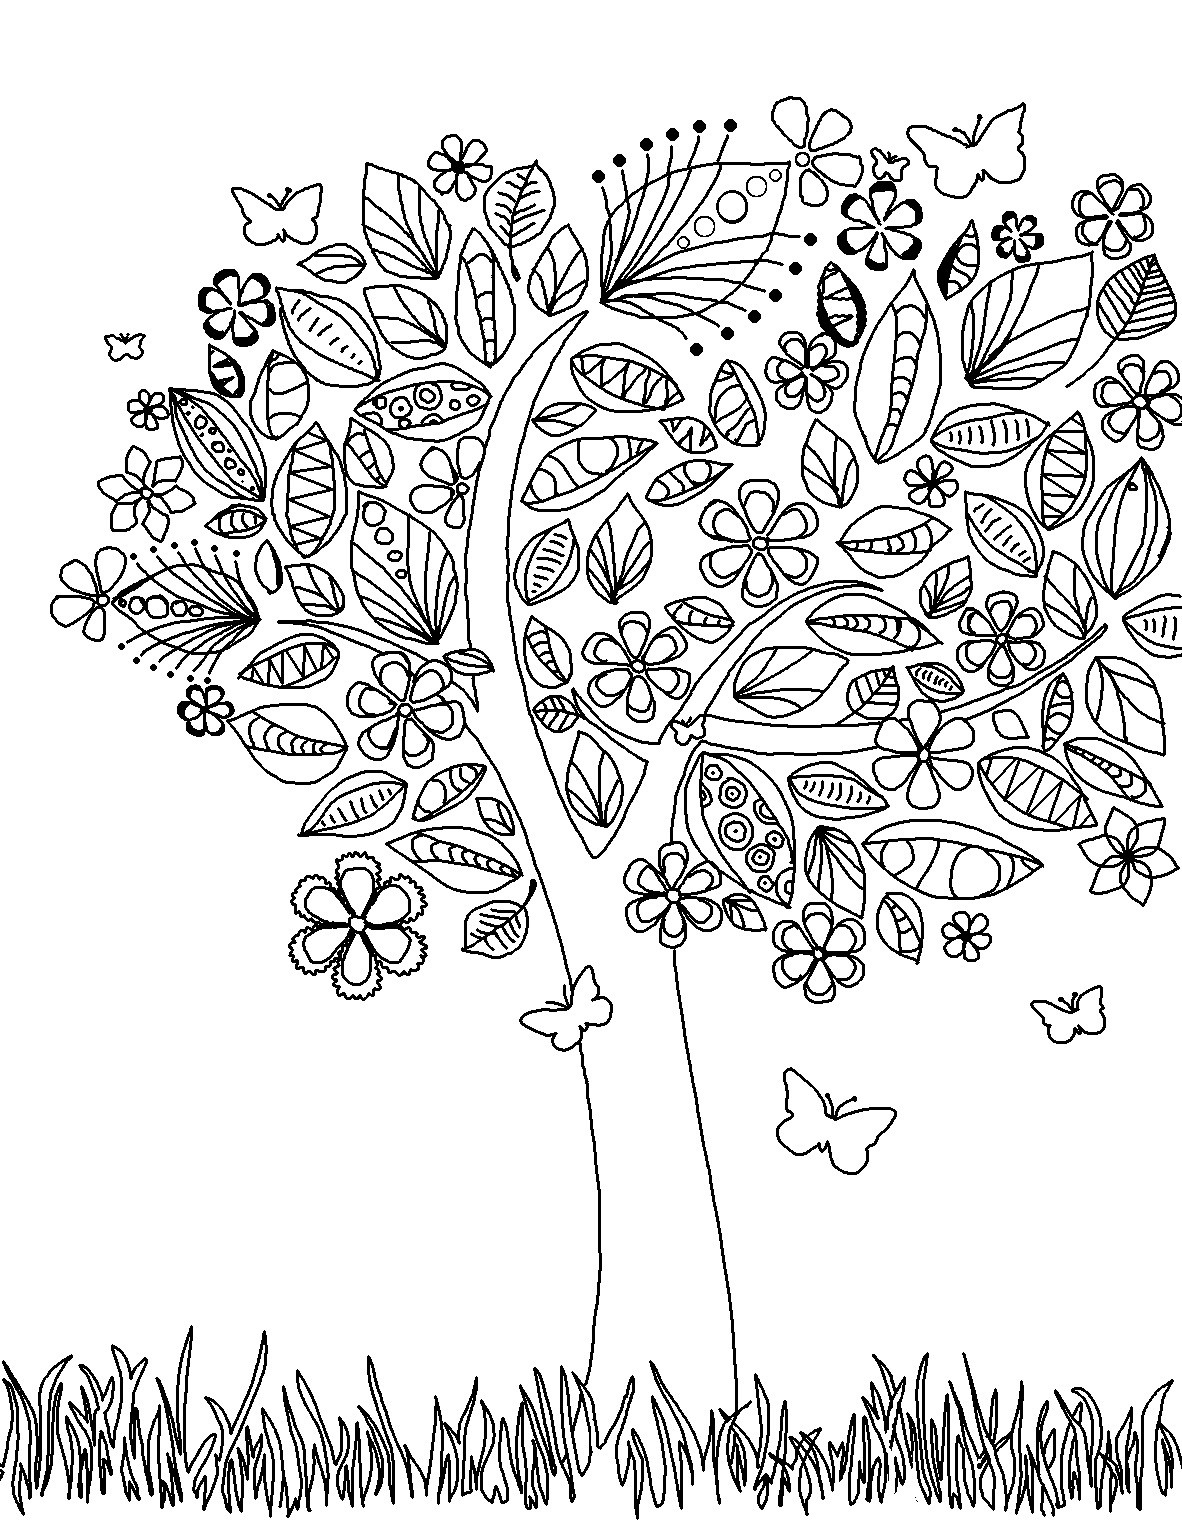 Free Coloring Sheets Adults  Free Printable Adult Coloring Pages